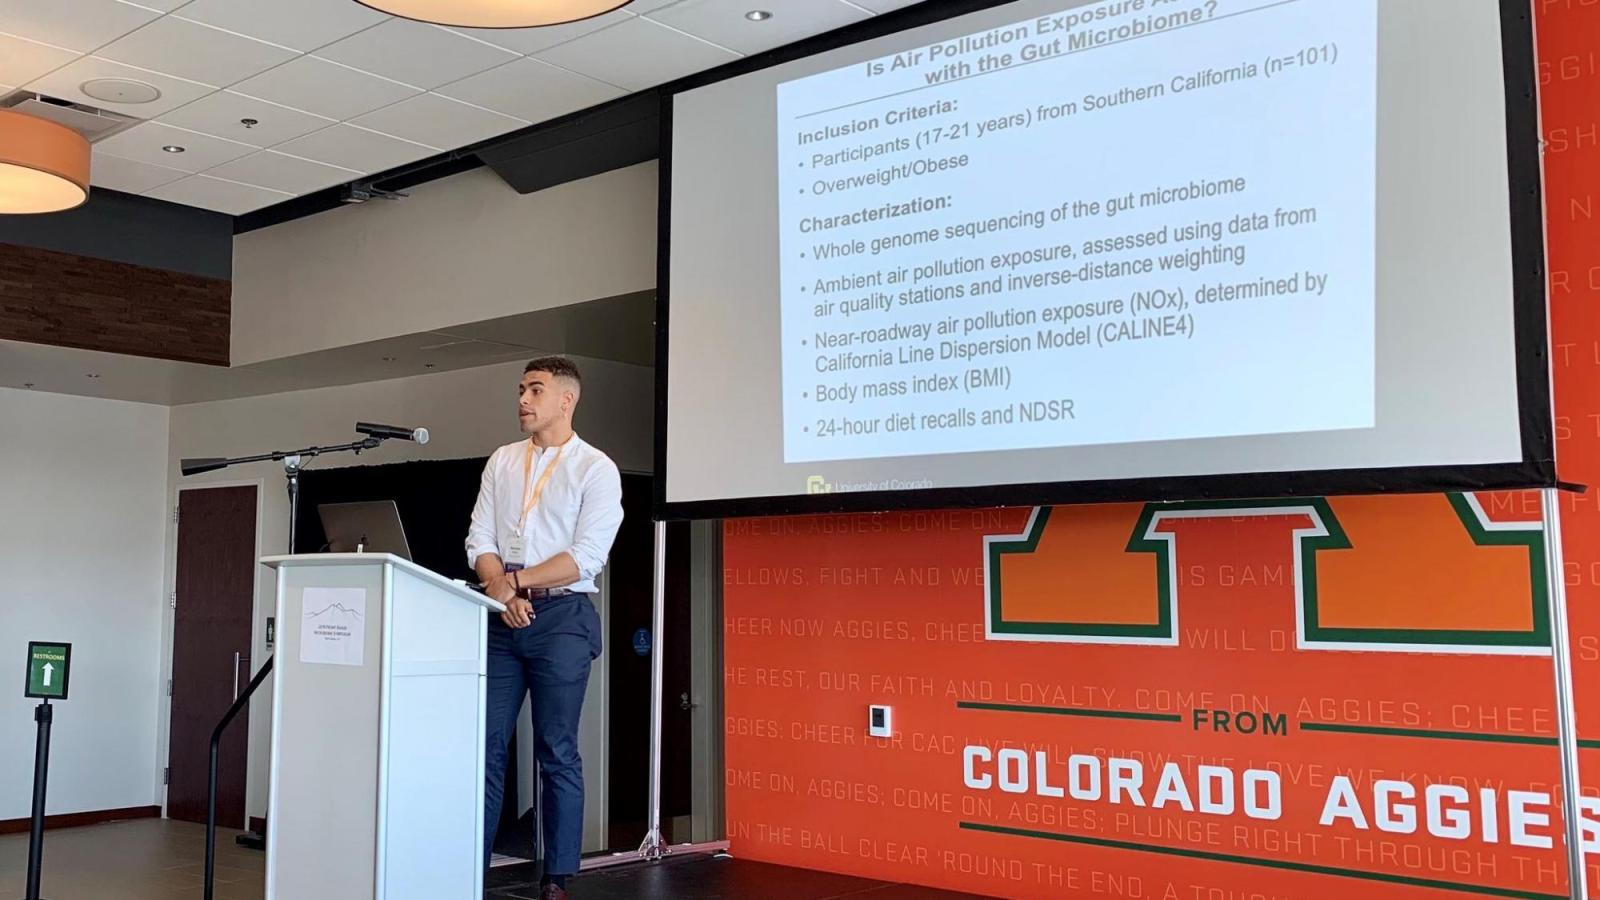 Max Bailey presents research at a podium